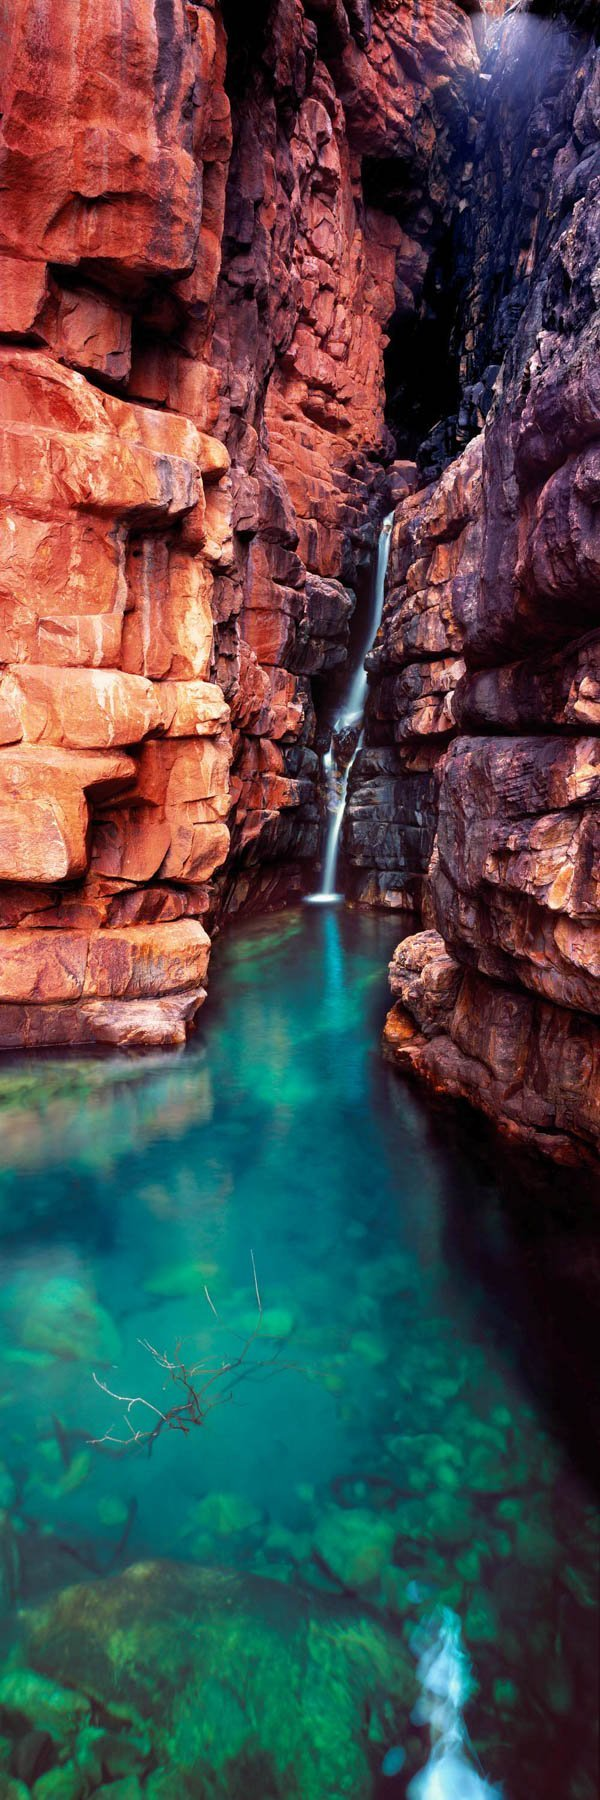 Sparkling fresh water flows down into a crystal clear pool in The Kimberleys, WA, Australia.